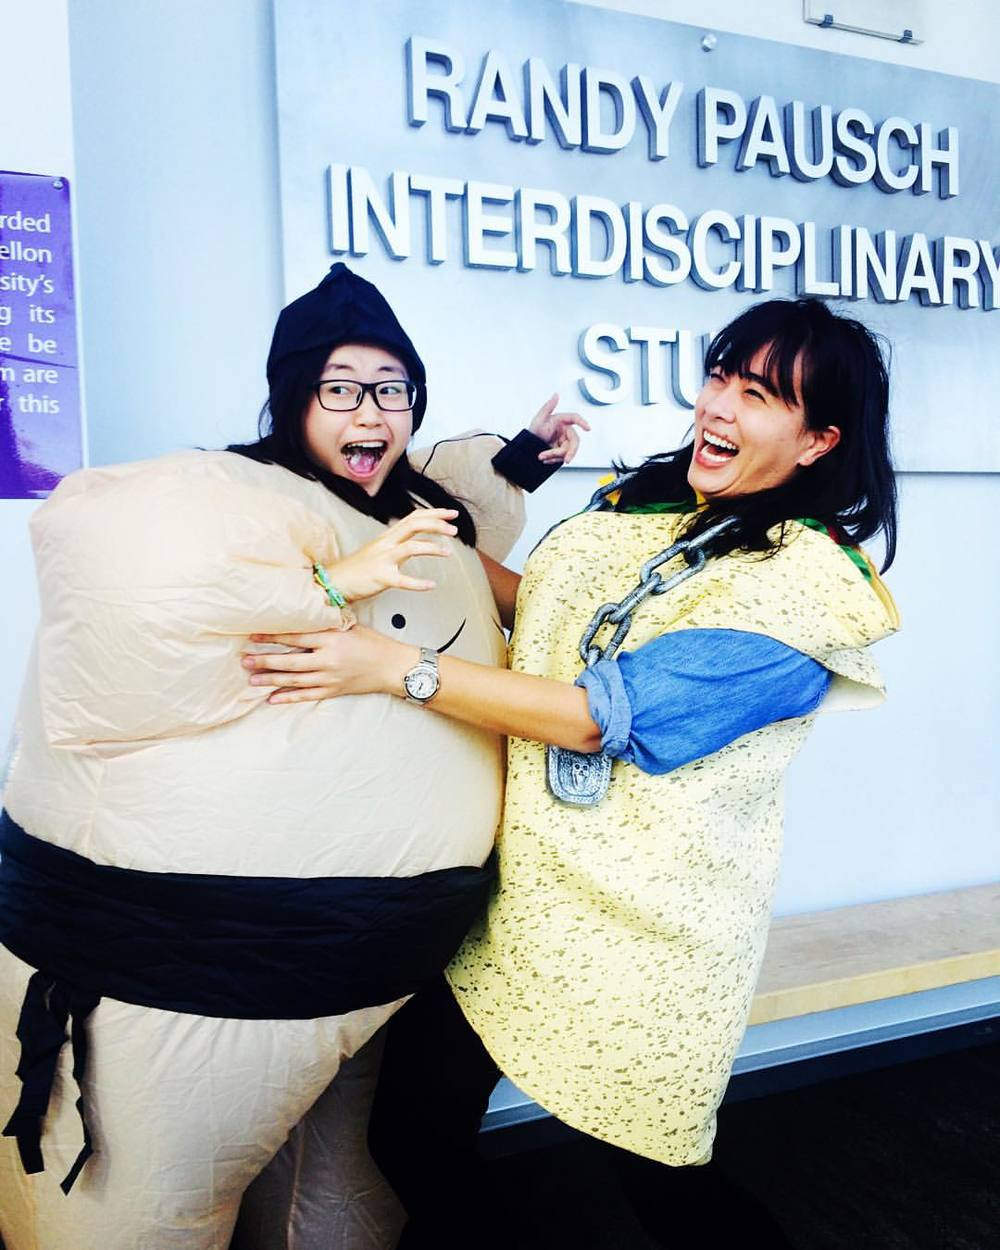 Taco attacked by sumo